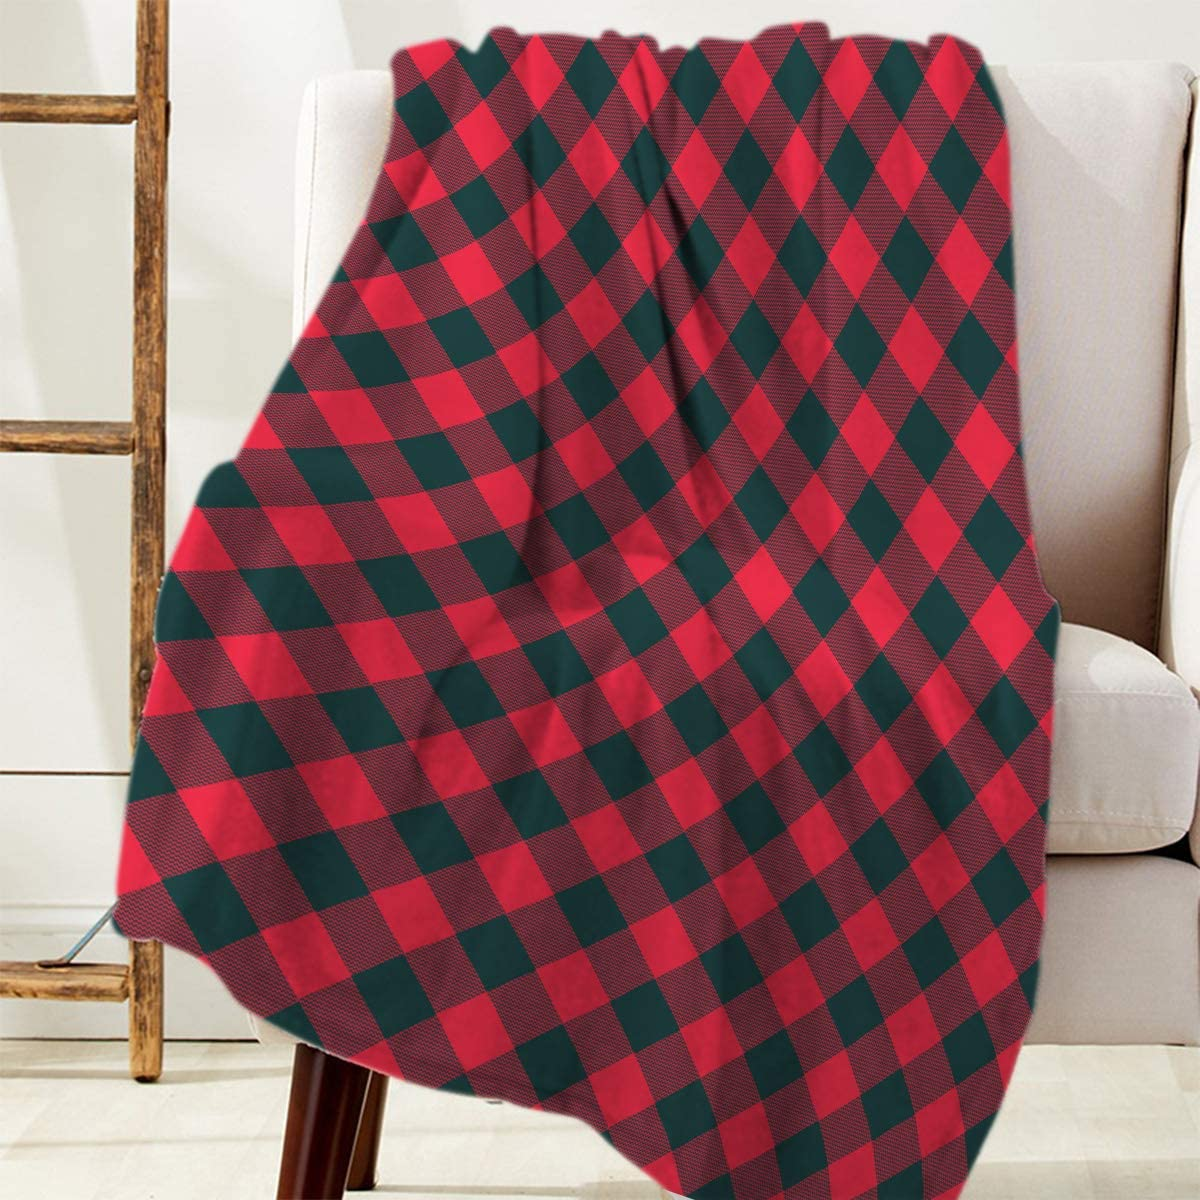 Fuzzy Fleece Blanket Throw for Luxury Season Columbus Mall Couch All Max 84% OFF